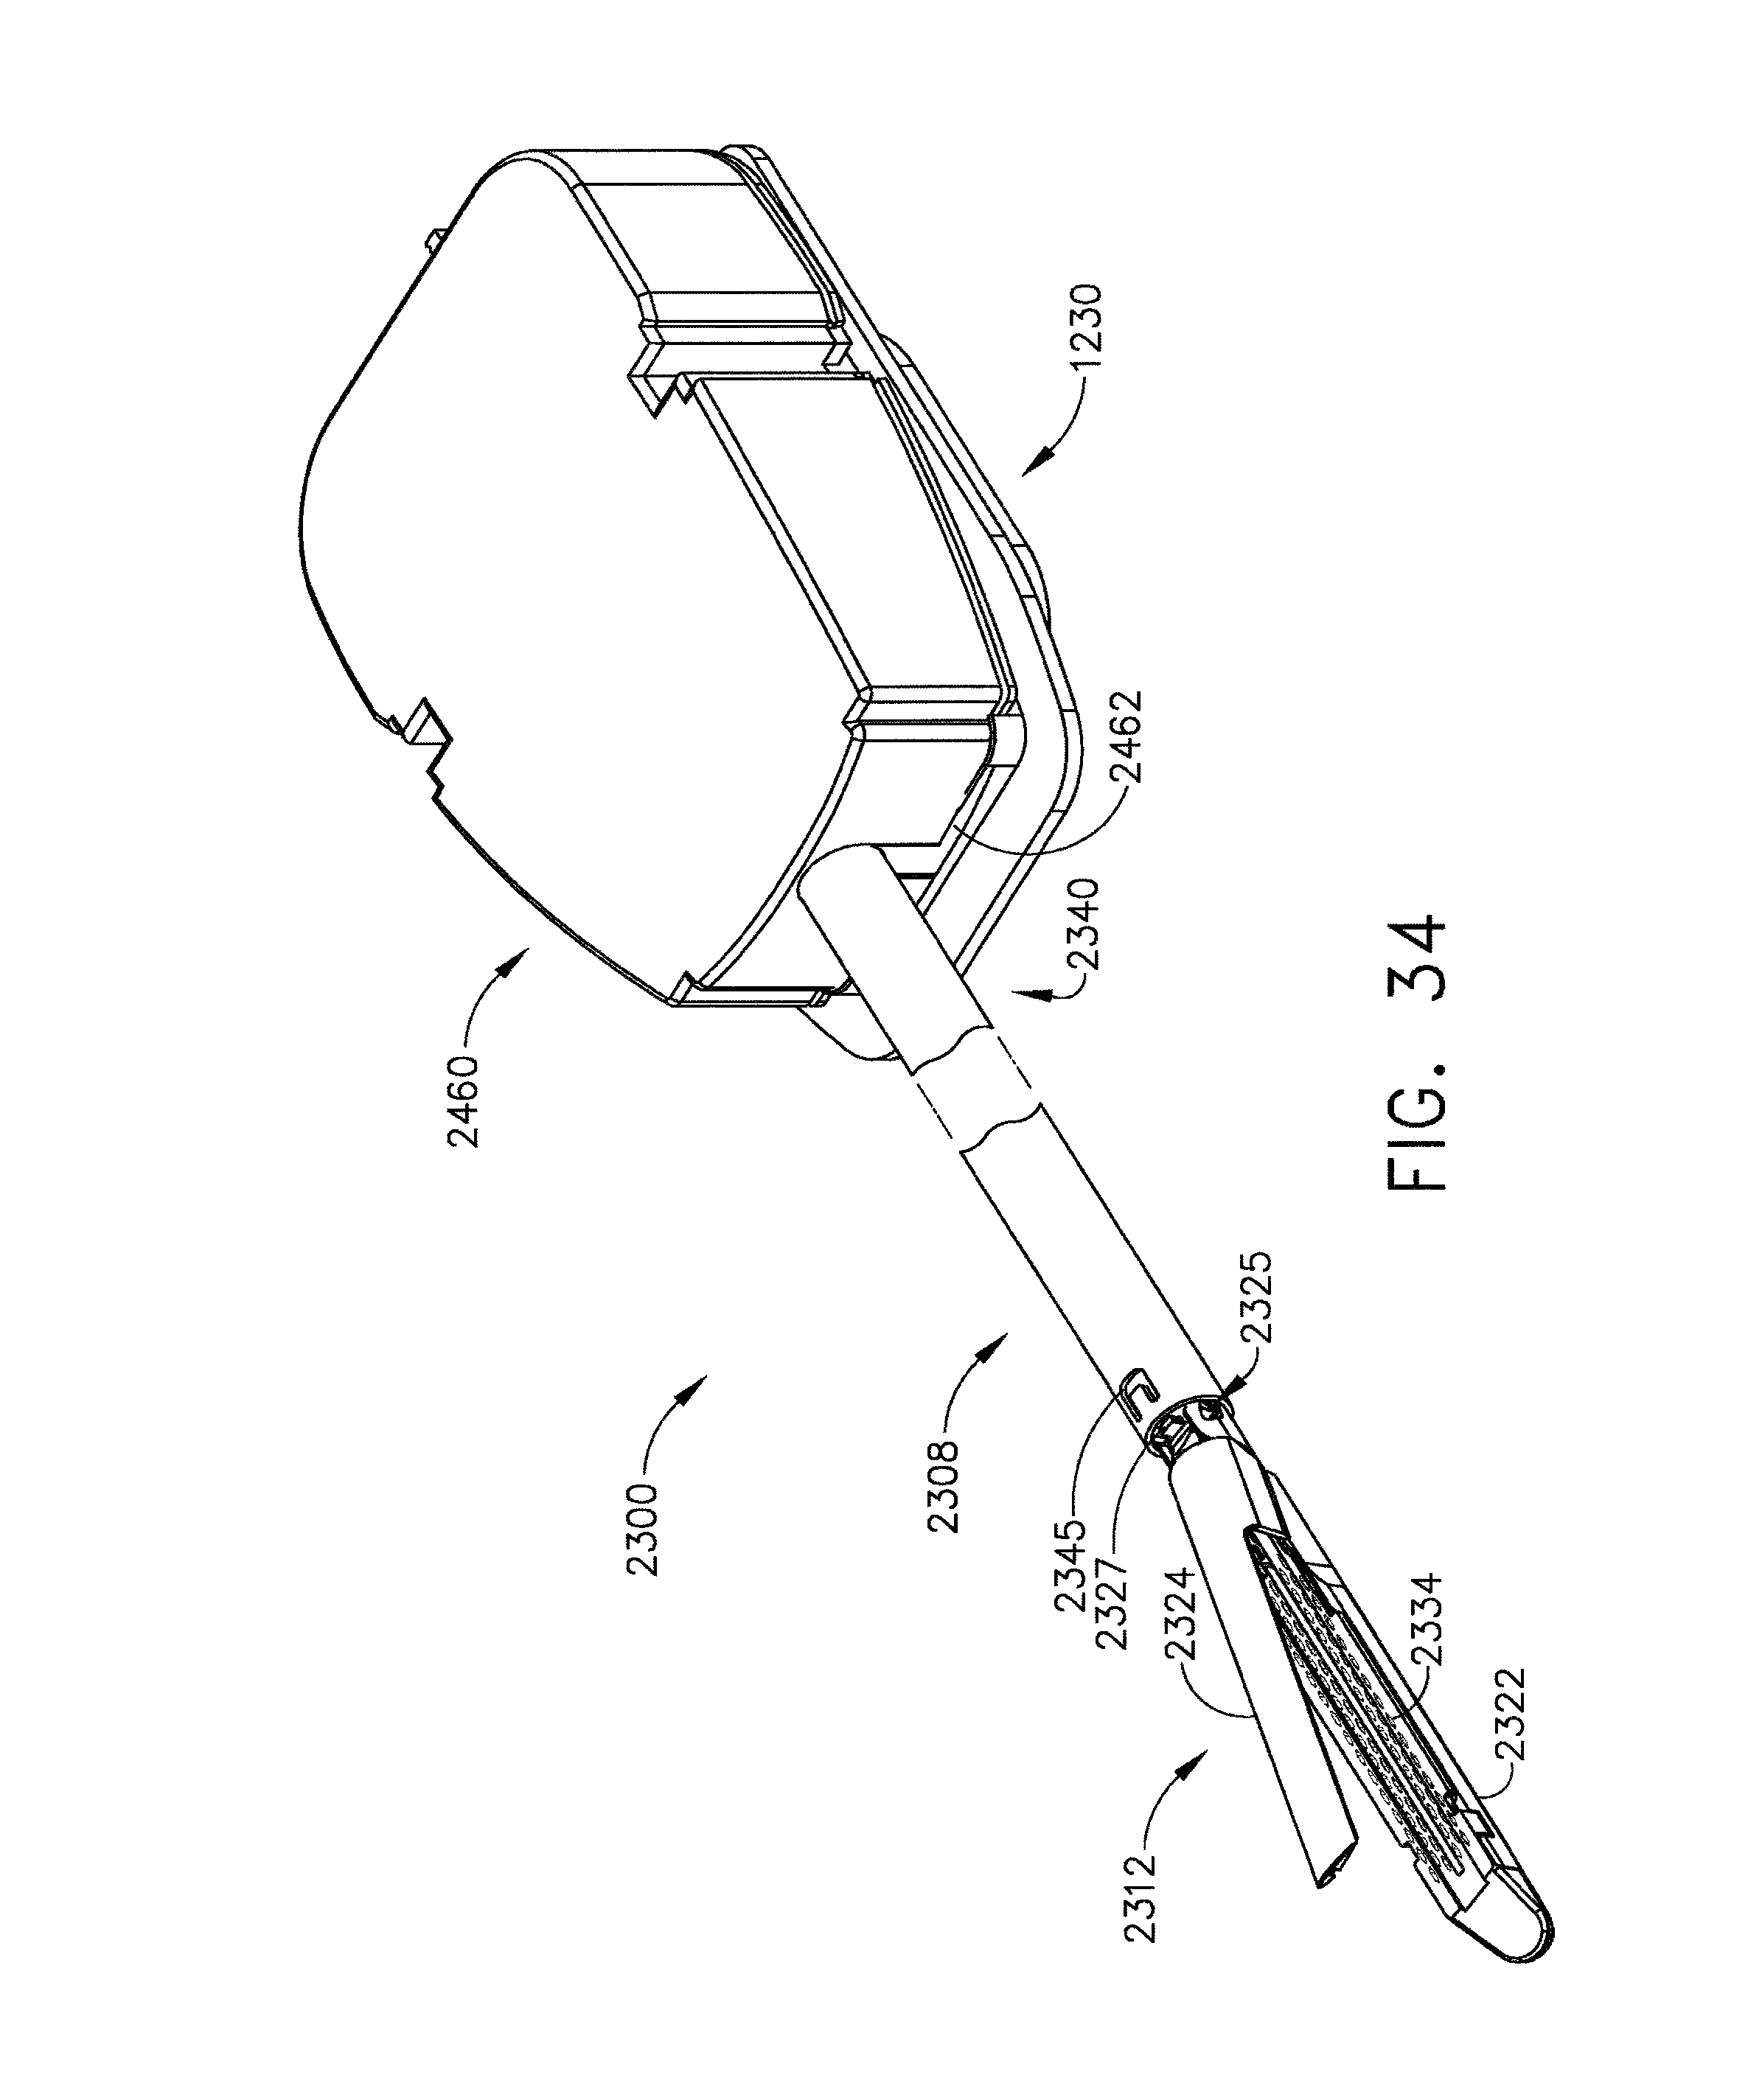 Us8998058b2 detachable motor powered surgical instrument patents